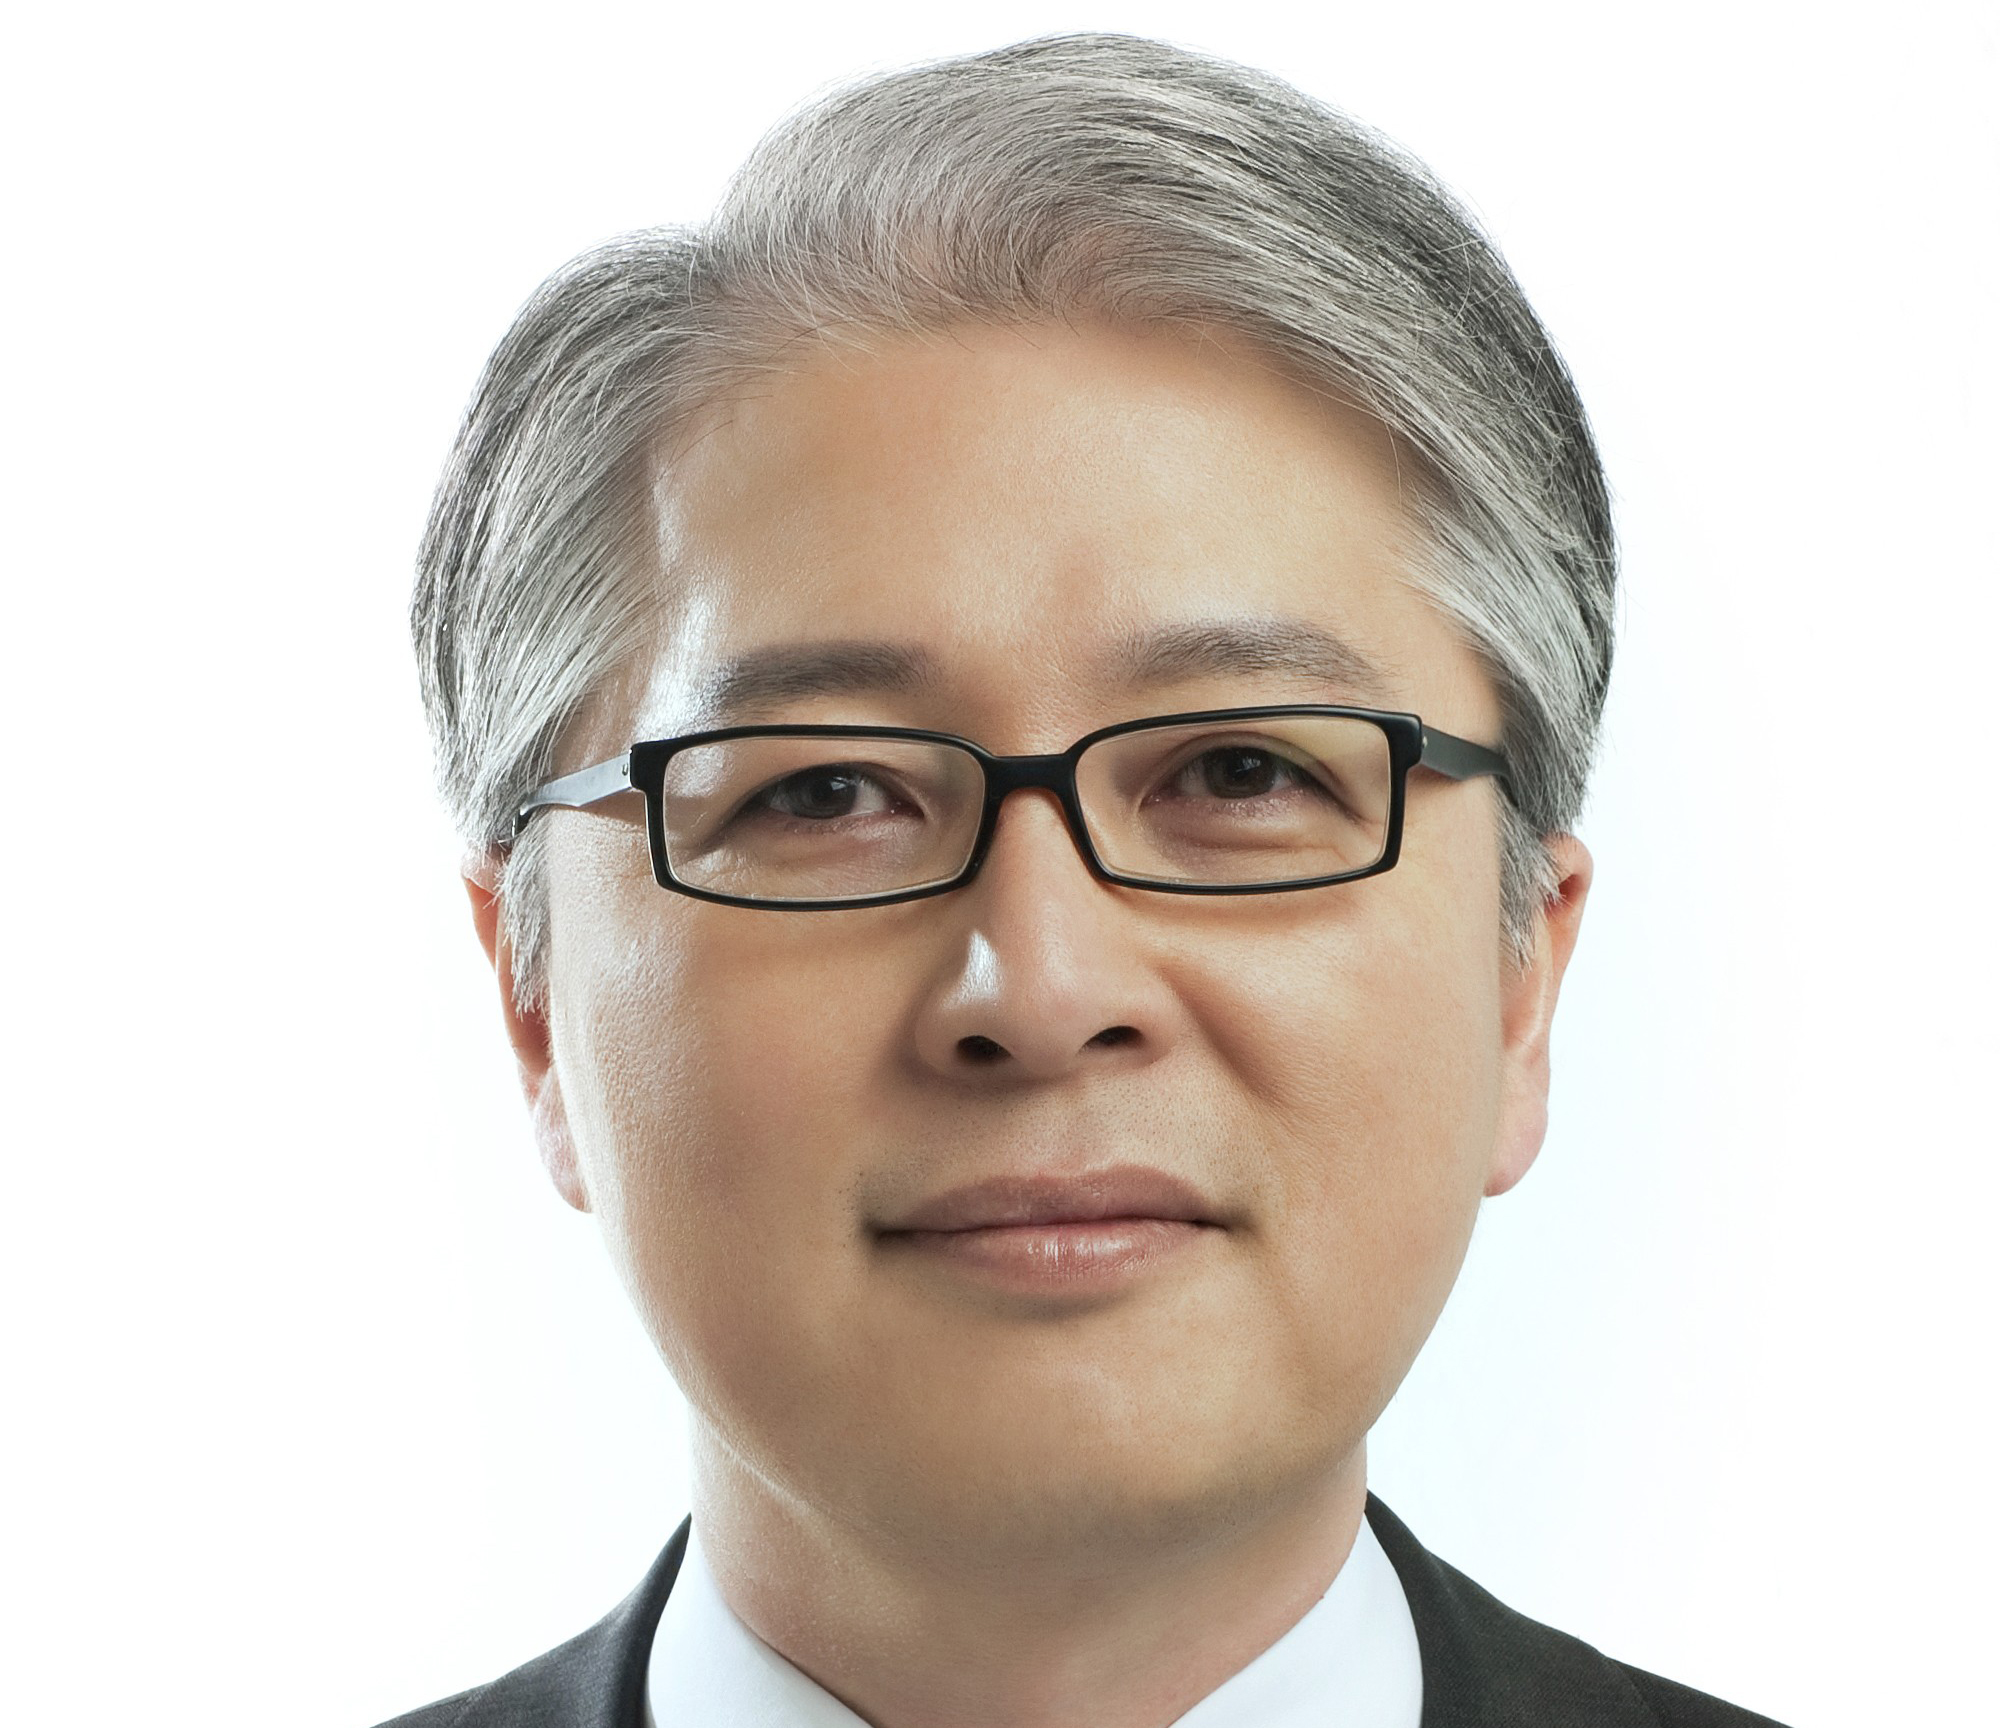 Leadership and operational changes at LG Electronics